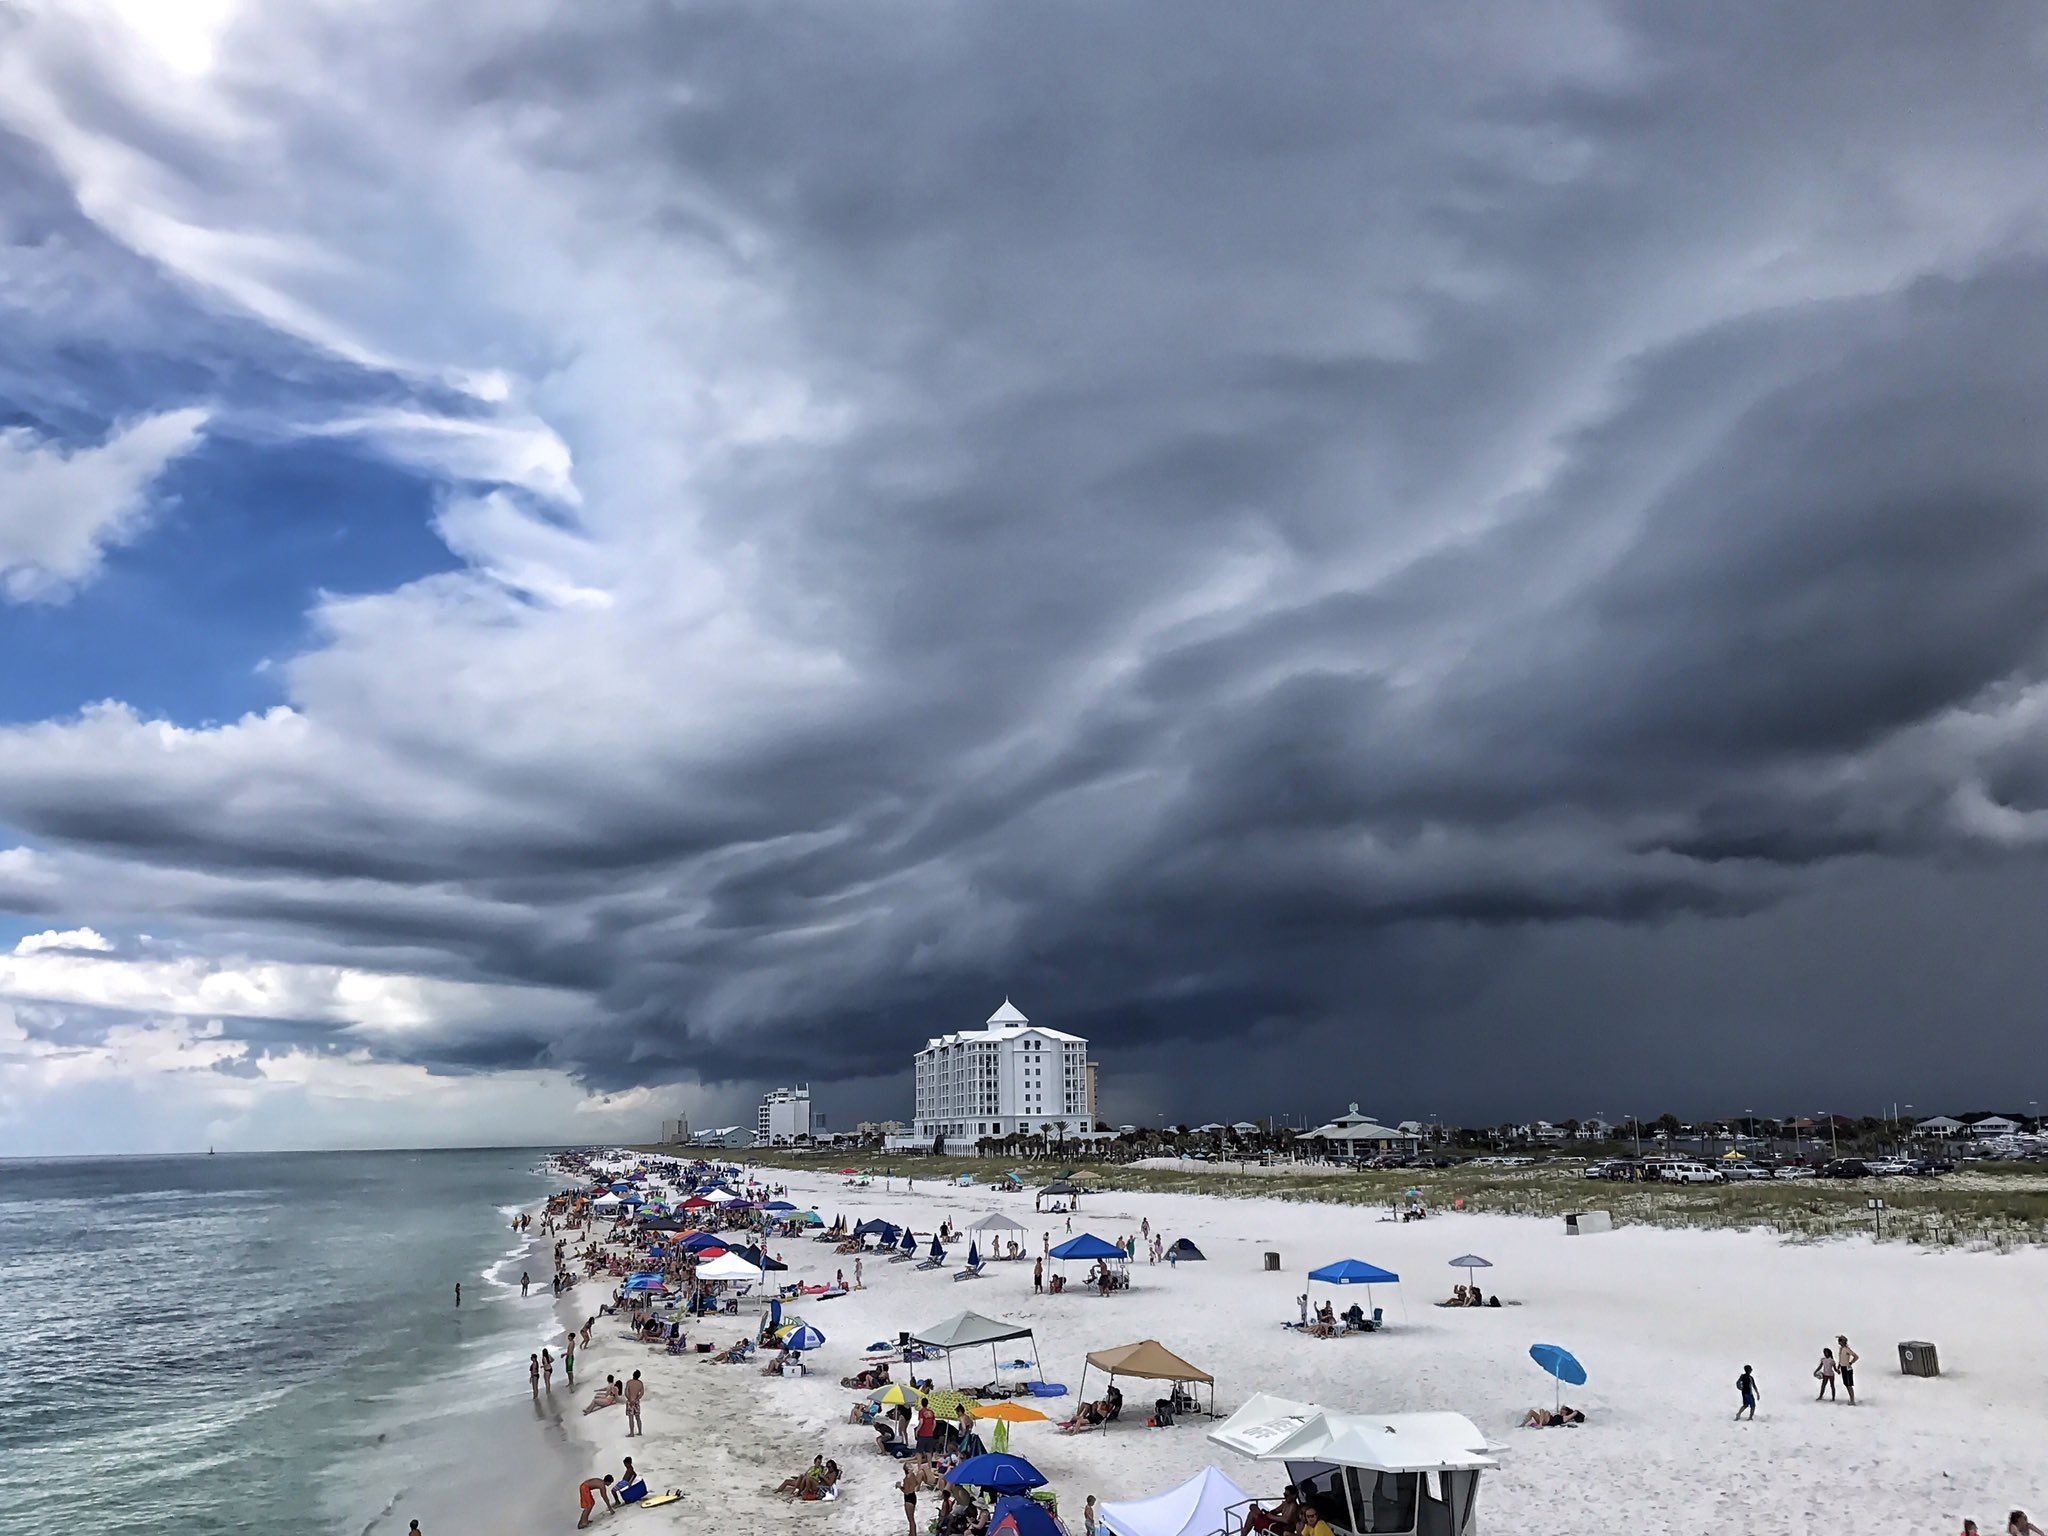 2048x1536 Storm this afternoon at Pensacola Beach... from @oumomof5